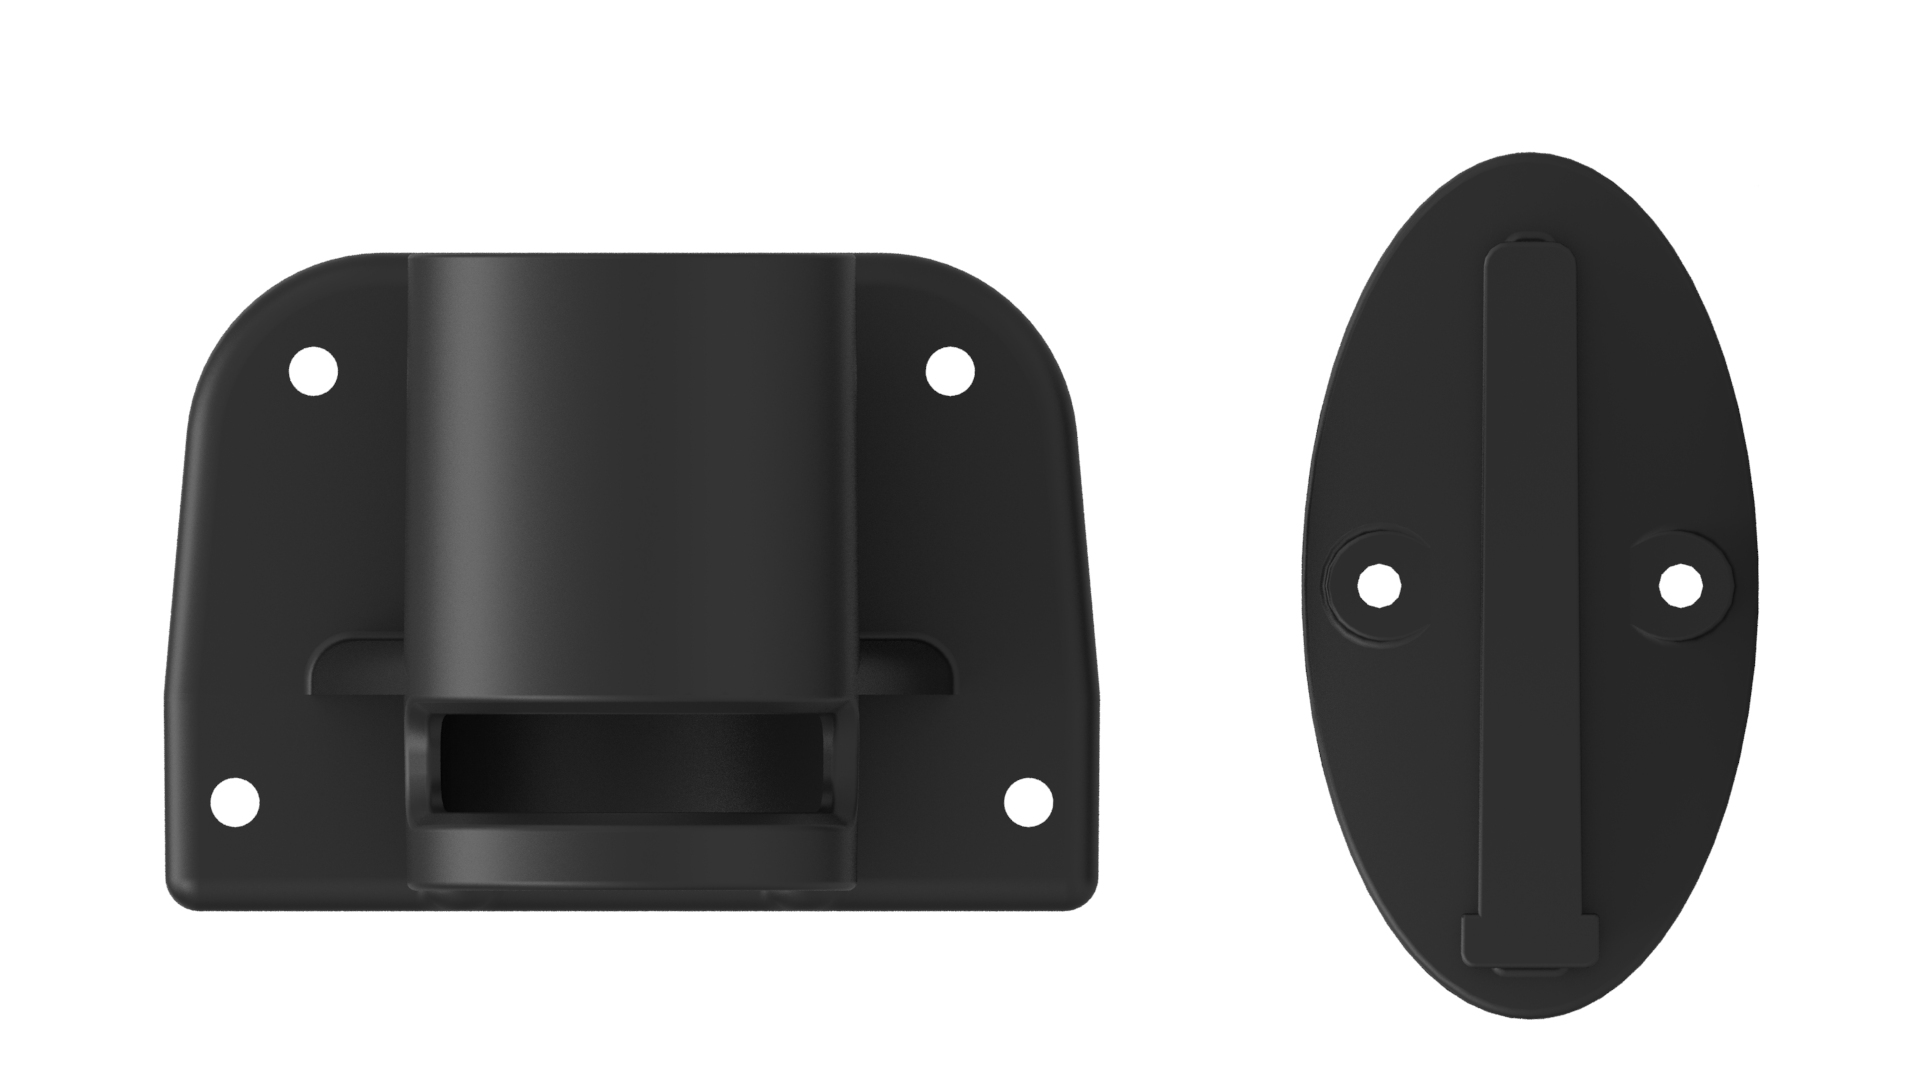 Plus Line Wall Mount System And Kits